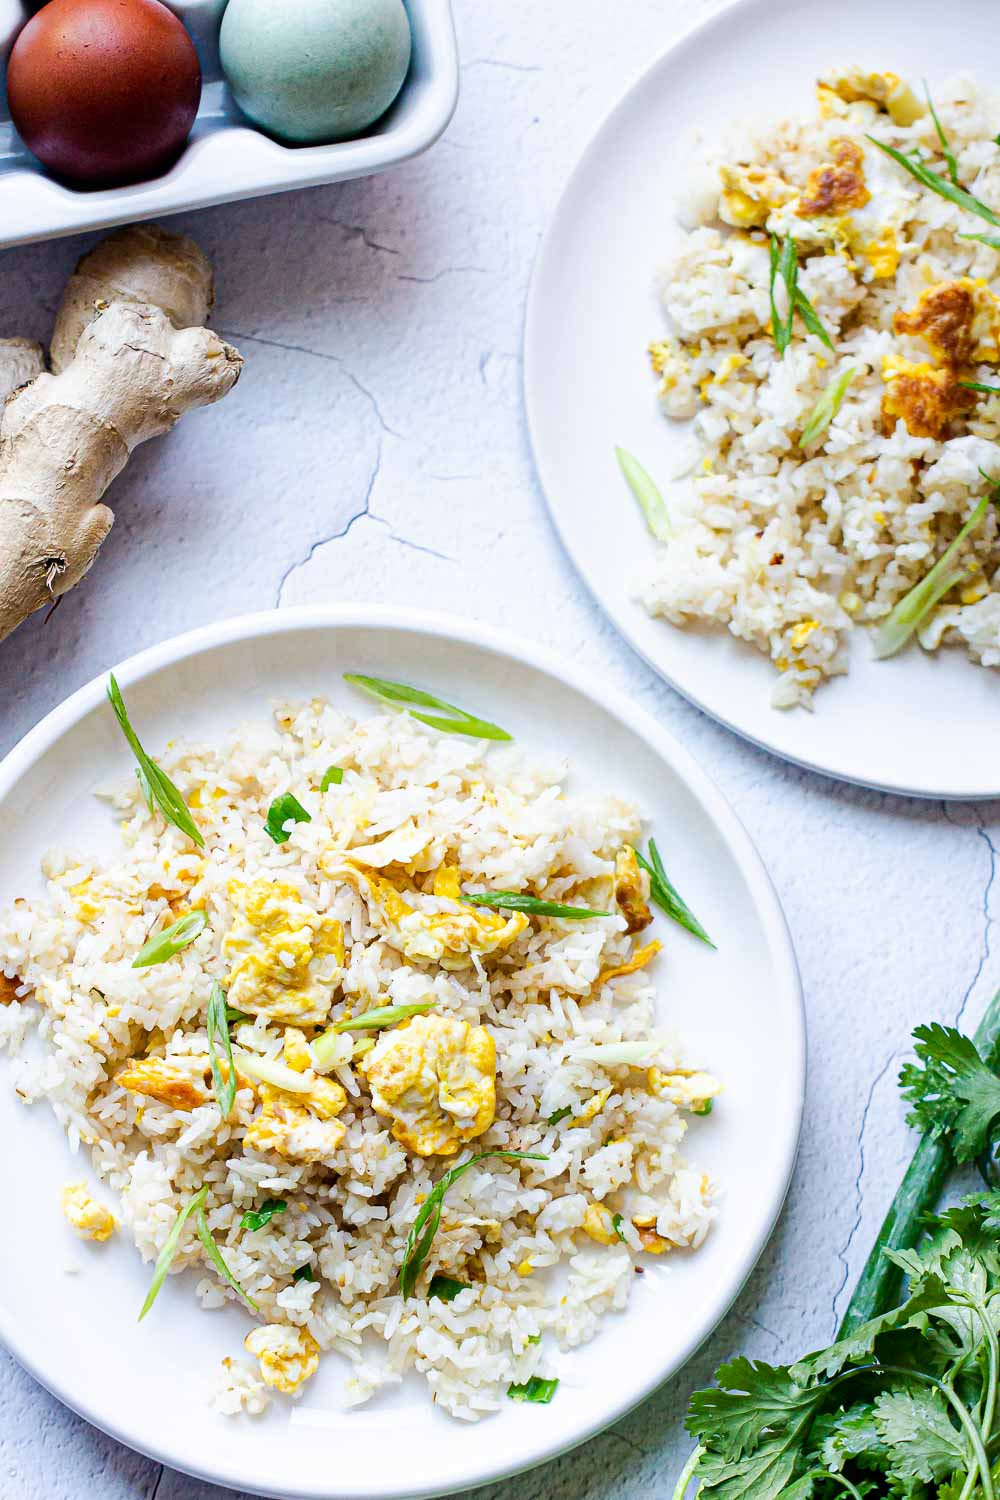 Ginger Fried Rice. A bowl of easy fried rice with the goodness of ginger and garlic and so delicious. A Satisfying weeknight meal that's better than takeout.